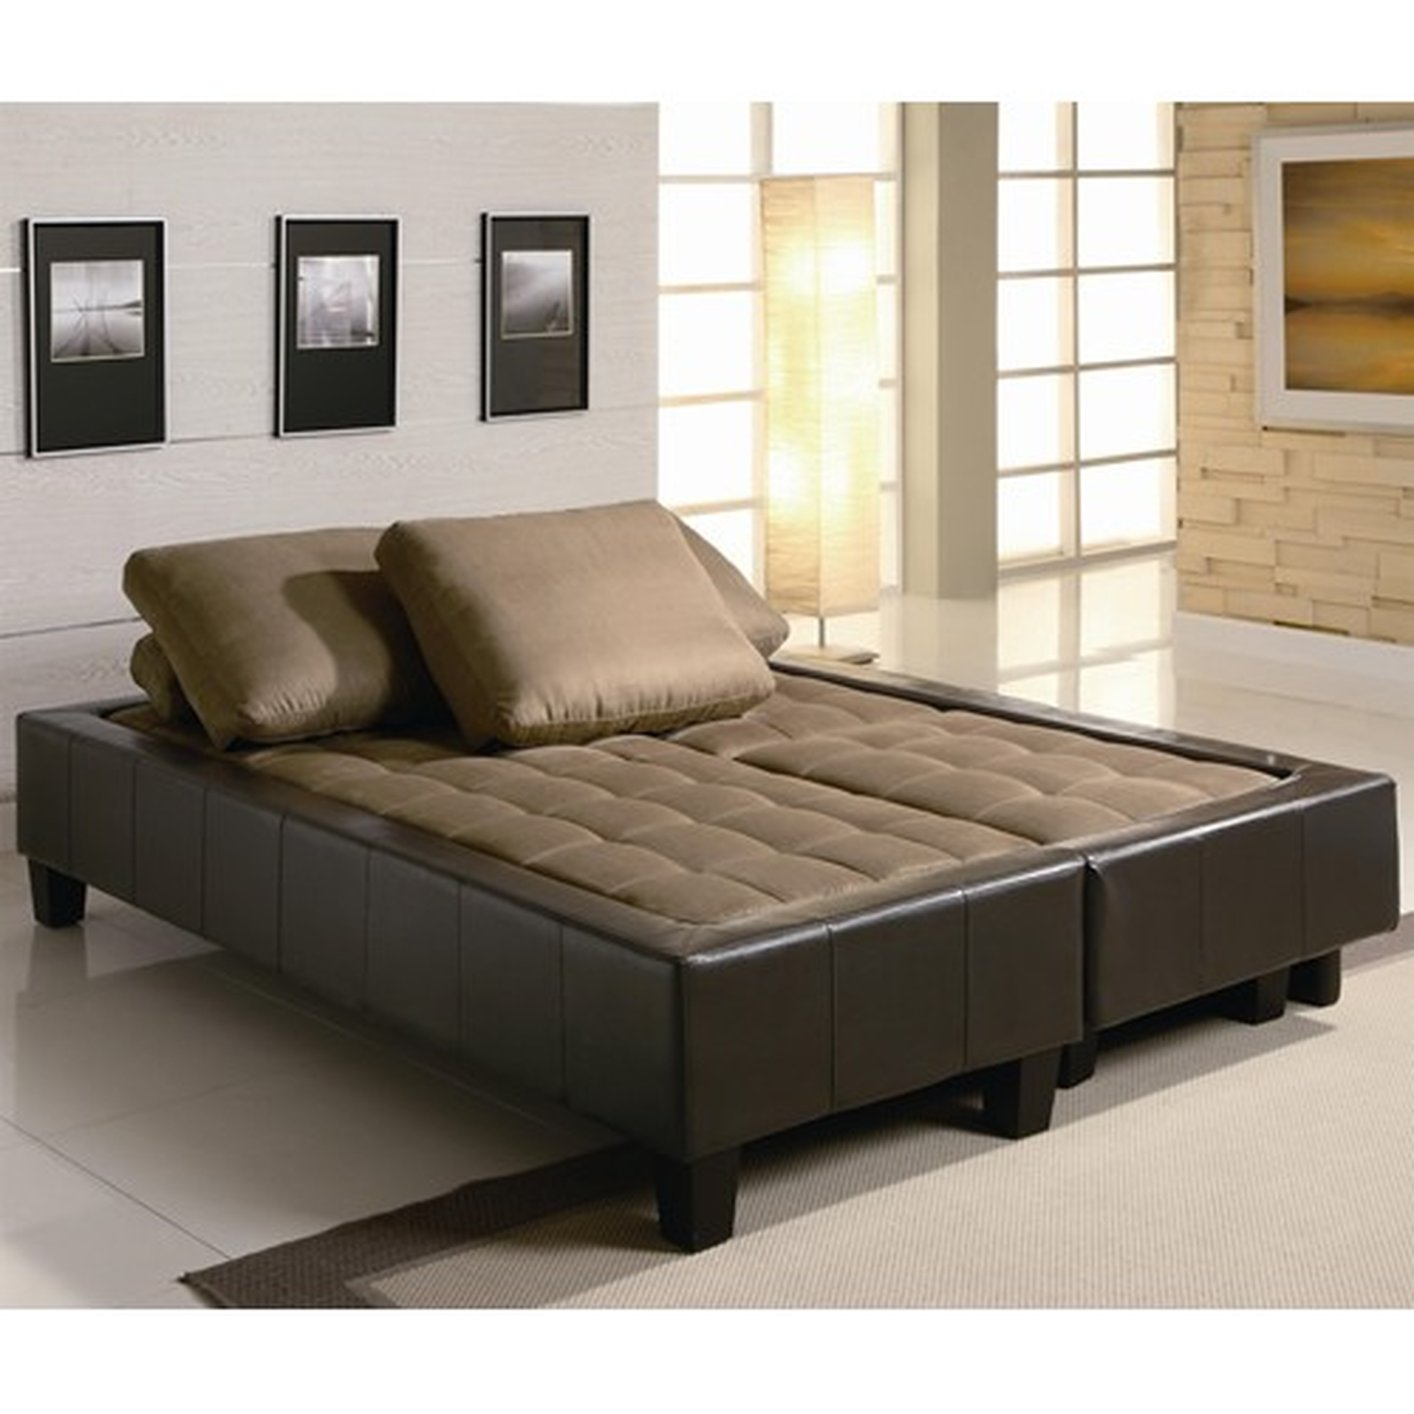 ... Brown Fabric Sofa Bed And Ottoman Set ...